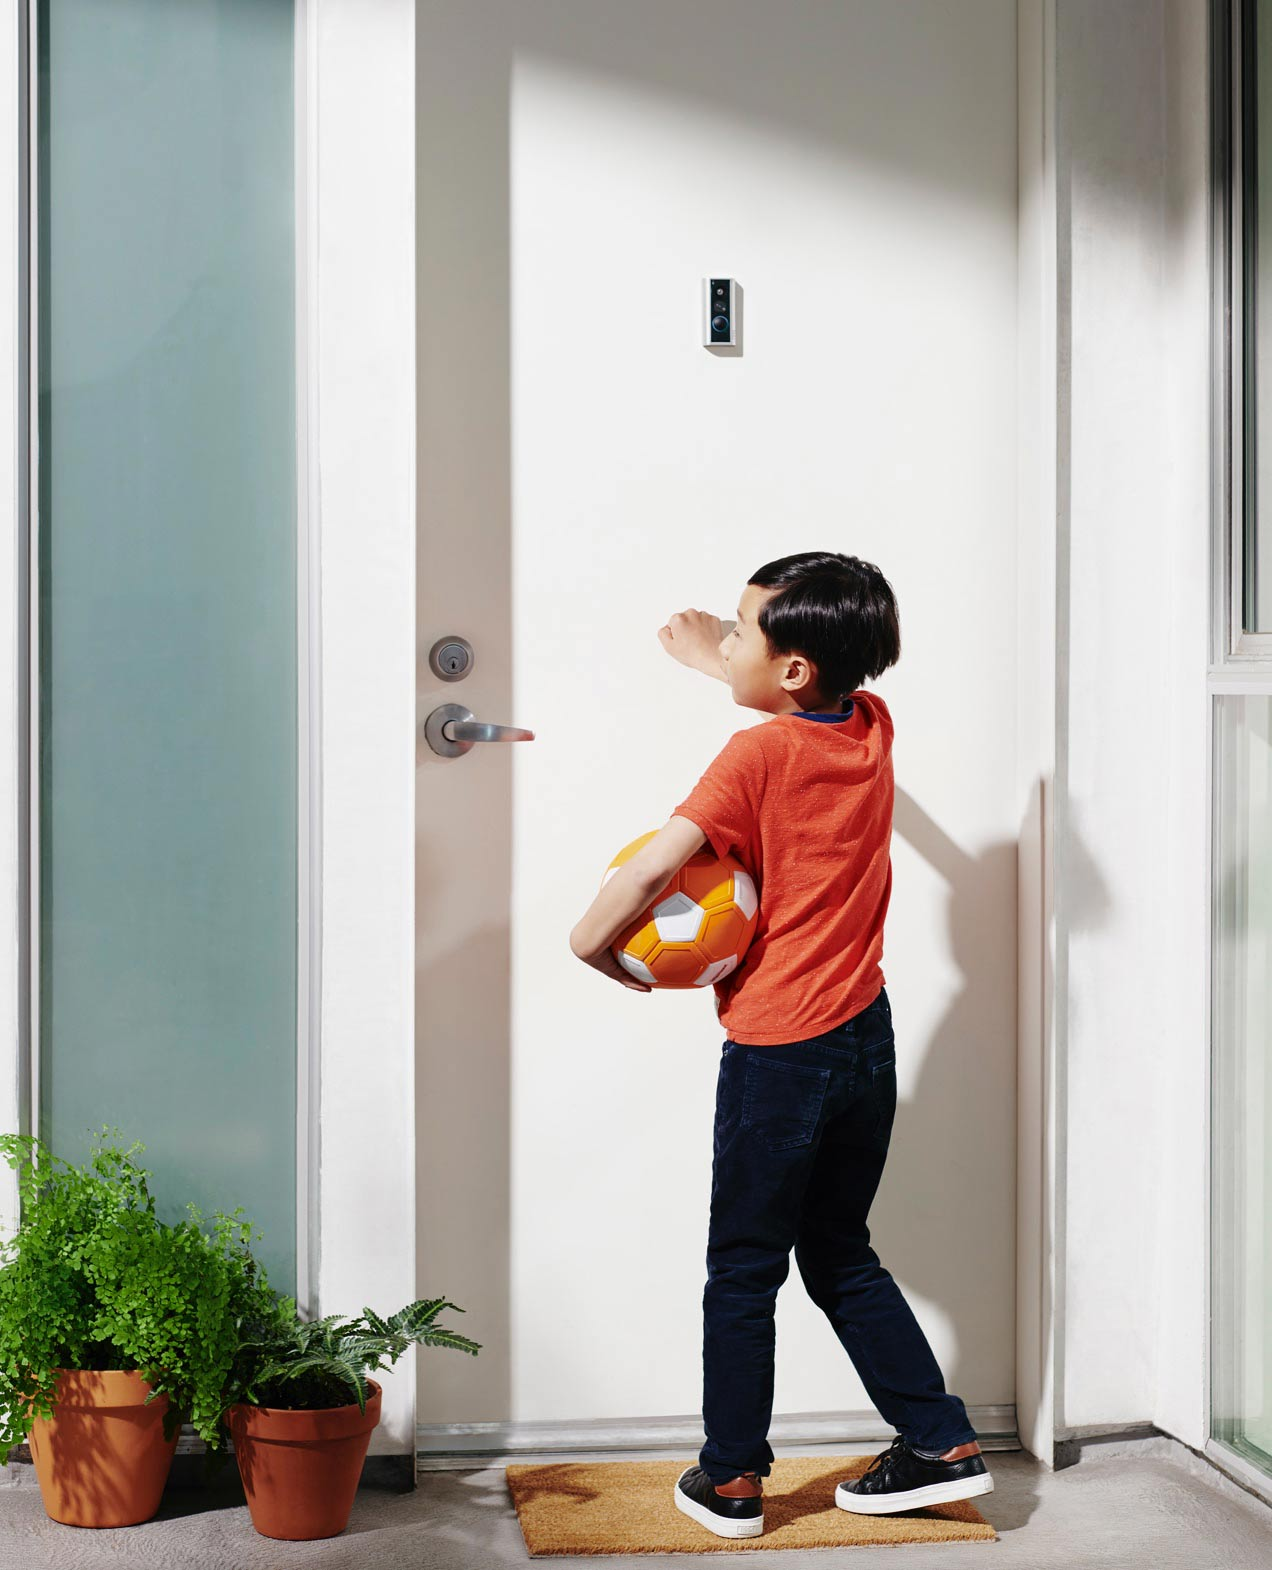 Peephole Cam detects door knocking so you never miss a visitor.